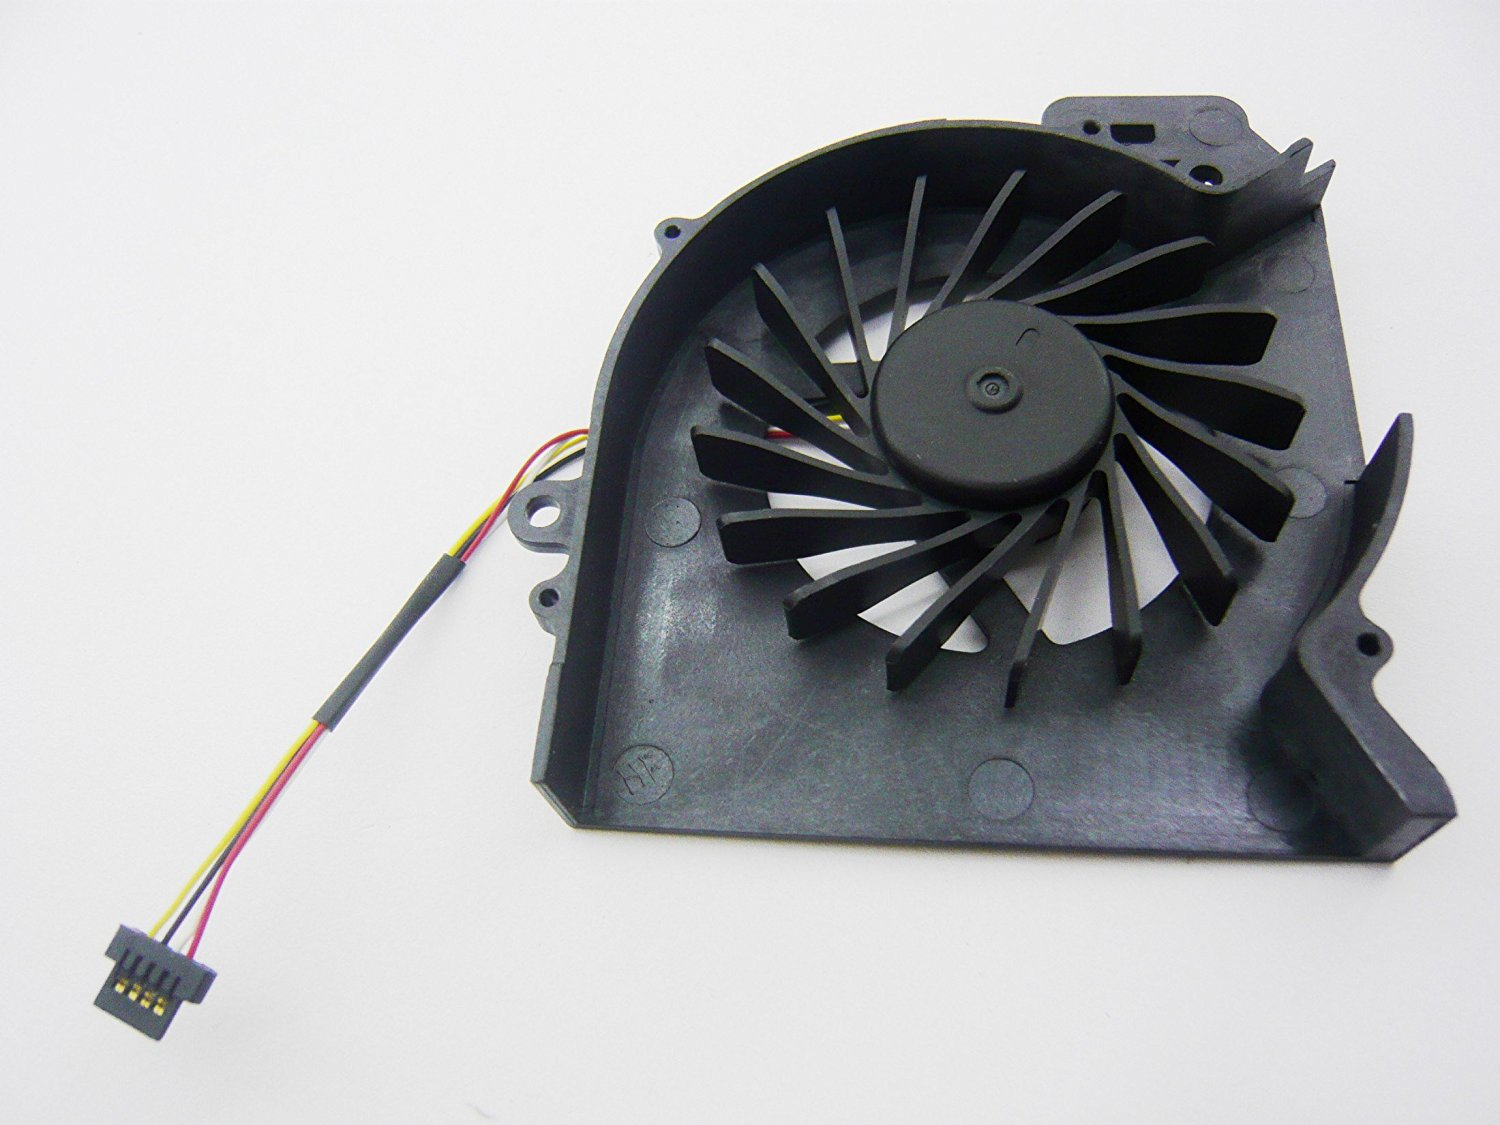 Cpu Cooling Fan /& Heatsink For HP Pavilion dv6-6108us Entertainment Notebook PC